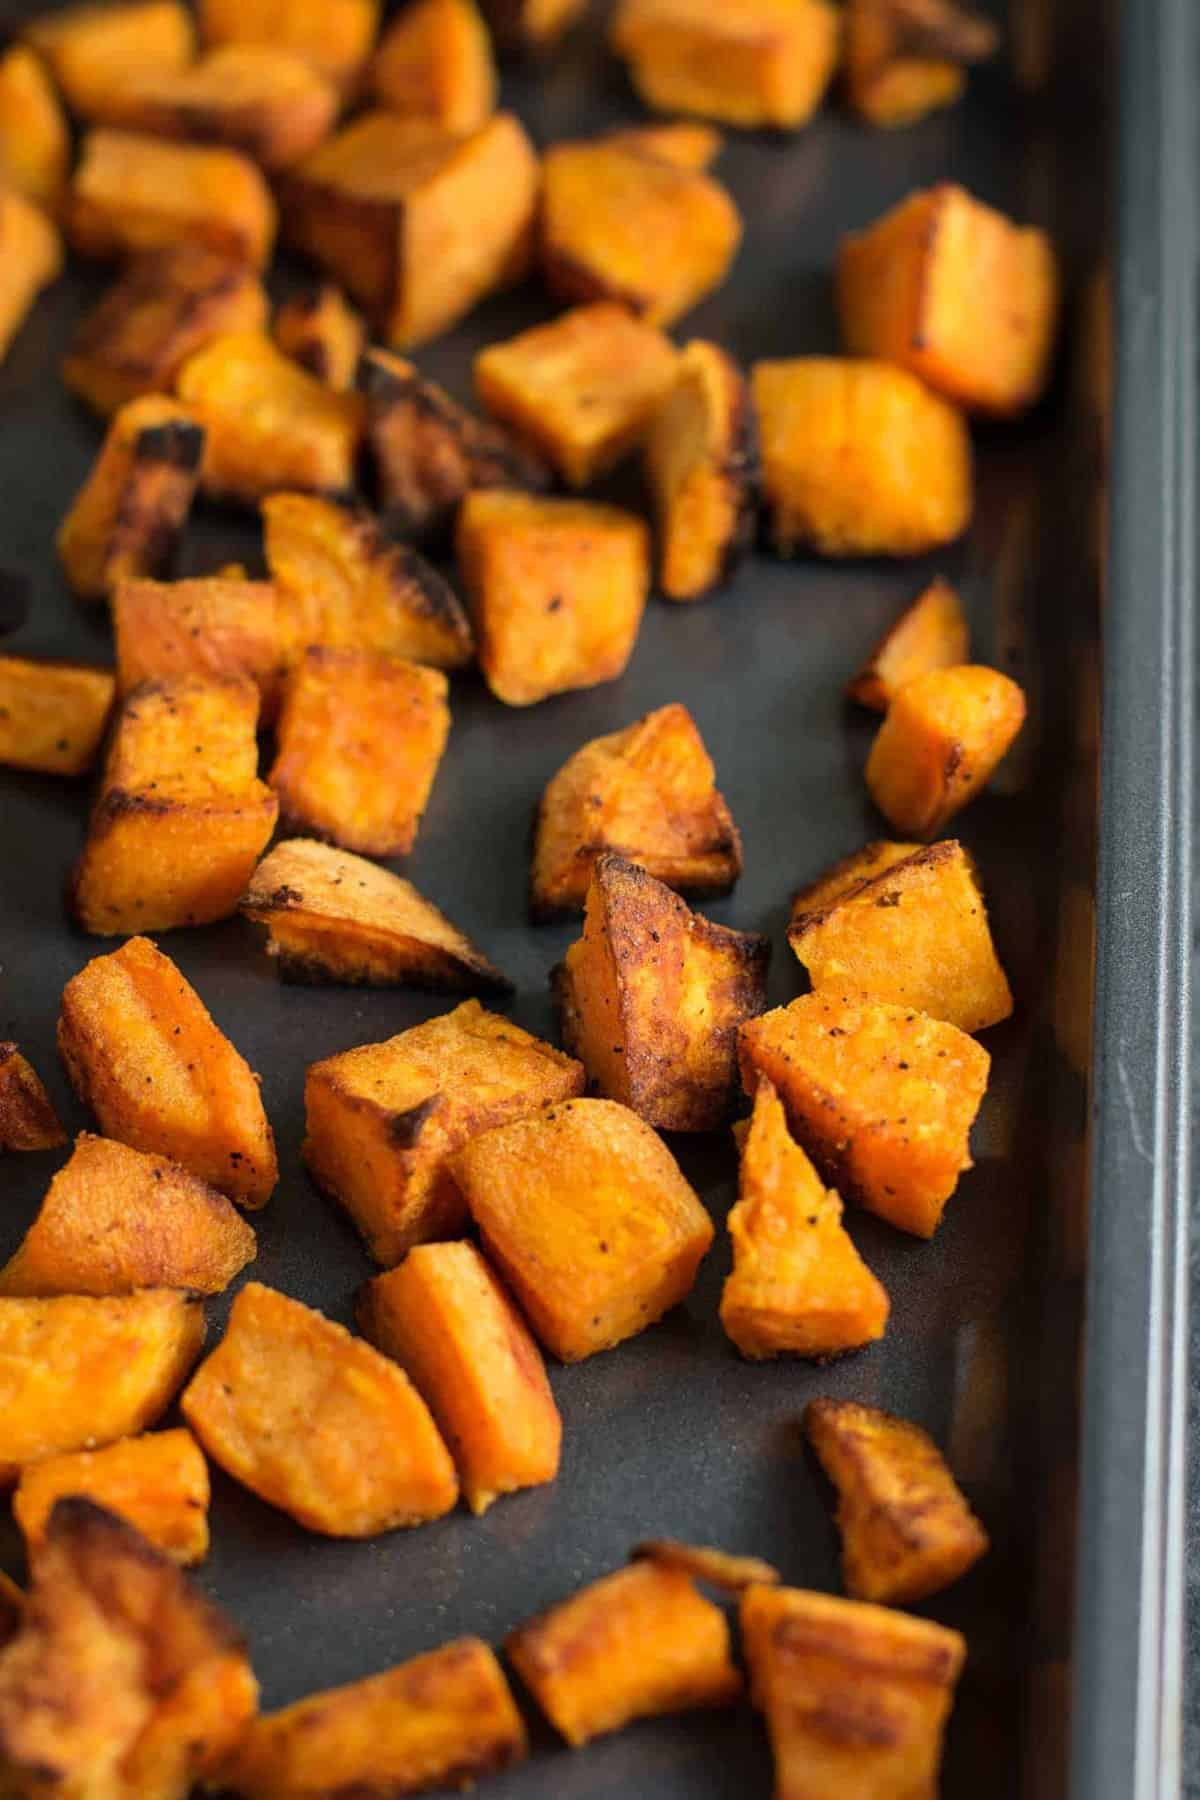 These easy oven roasted sweet potatoes are made with just 5 ingredients and ready in less than 30 minutes. Versatile enough to eat for any meal of the day!